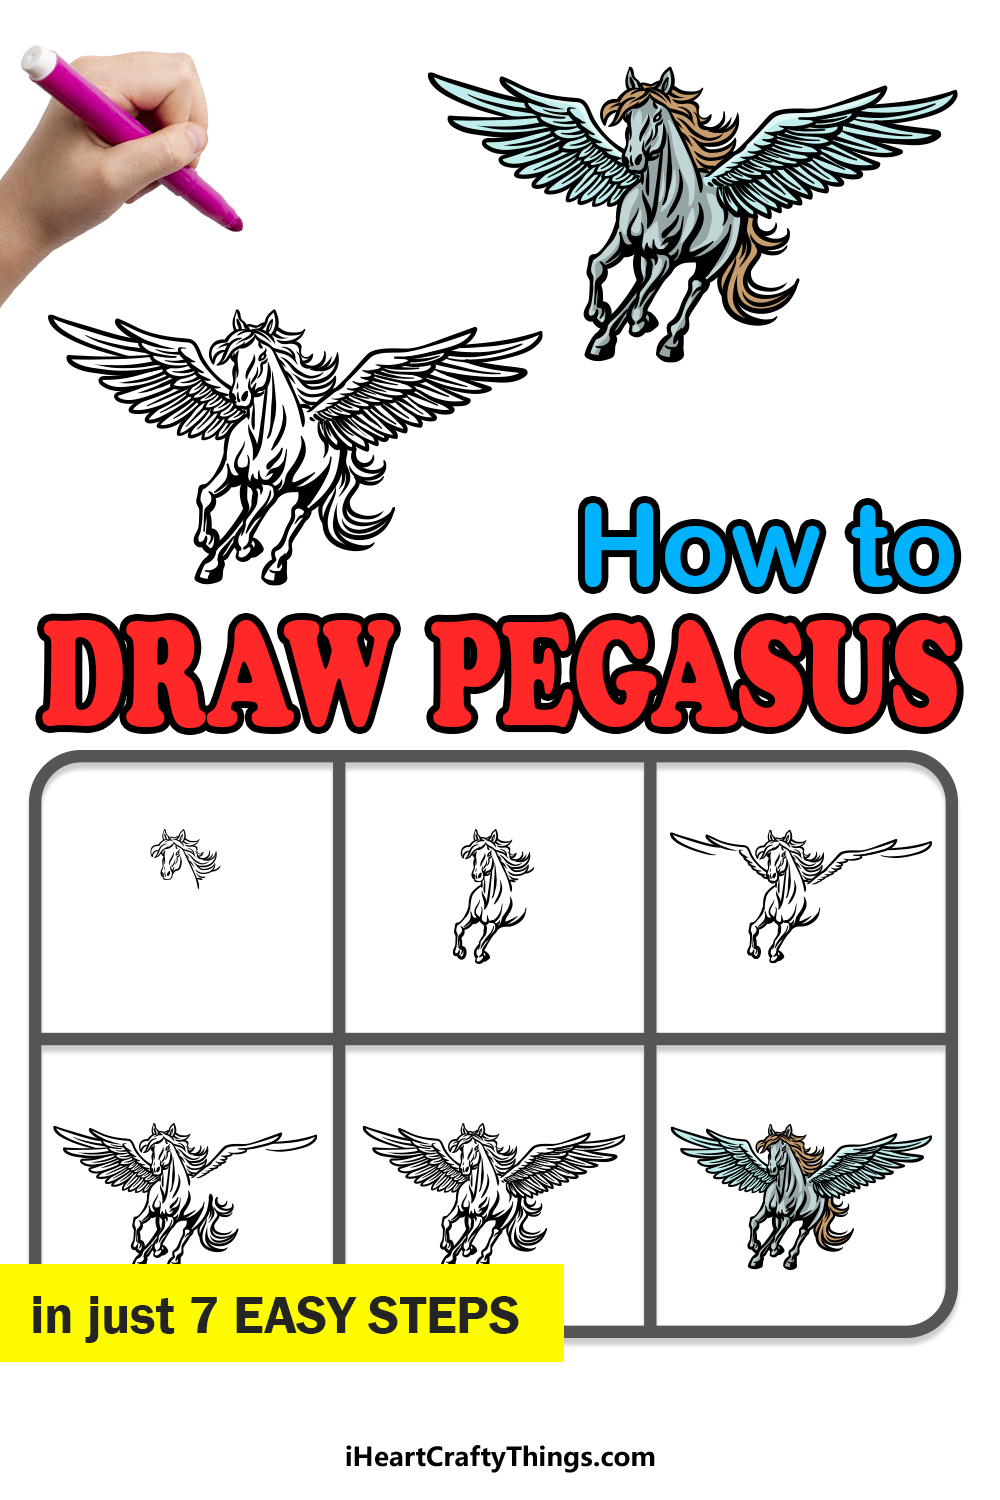 how to draw Pegasus in 7 easy steps